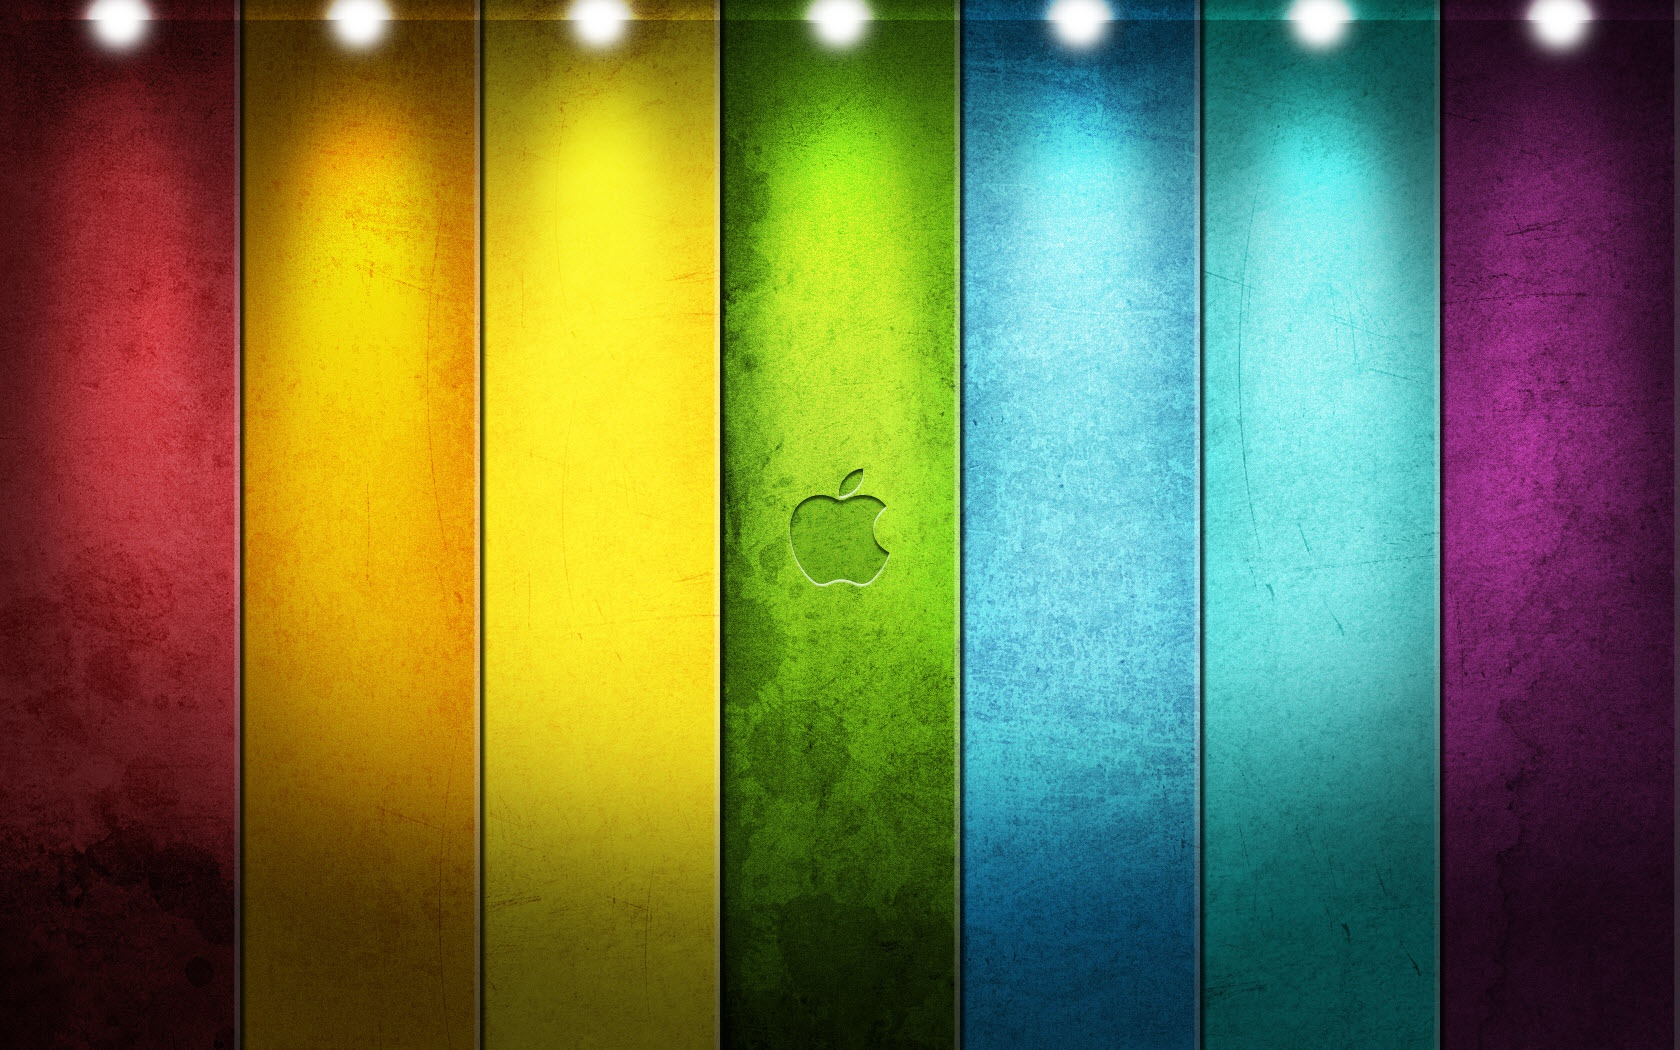 Apple Focus Wallpaper